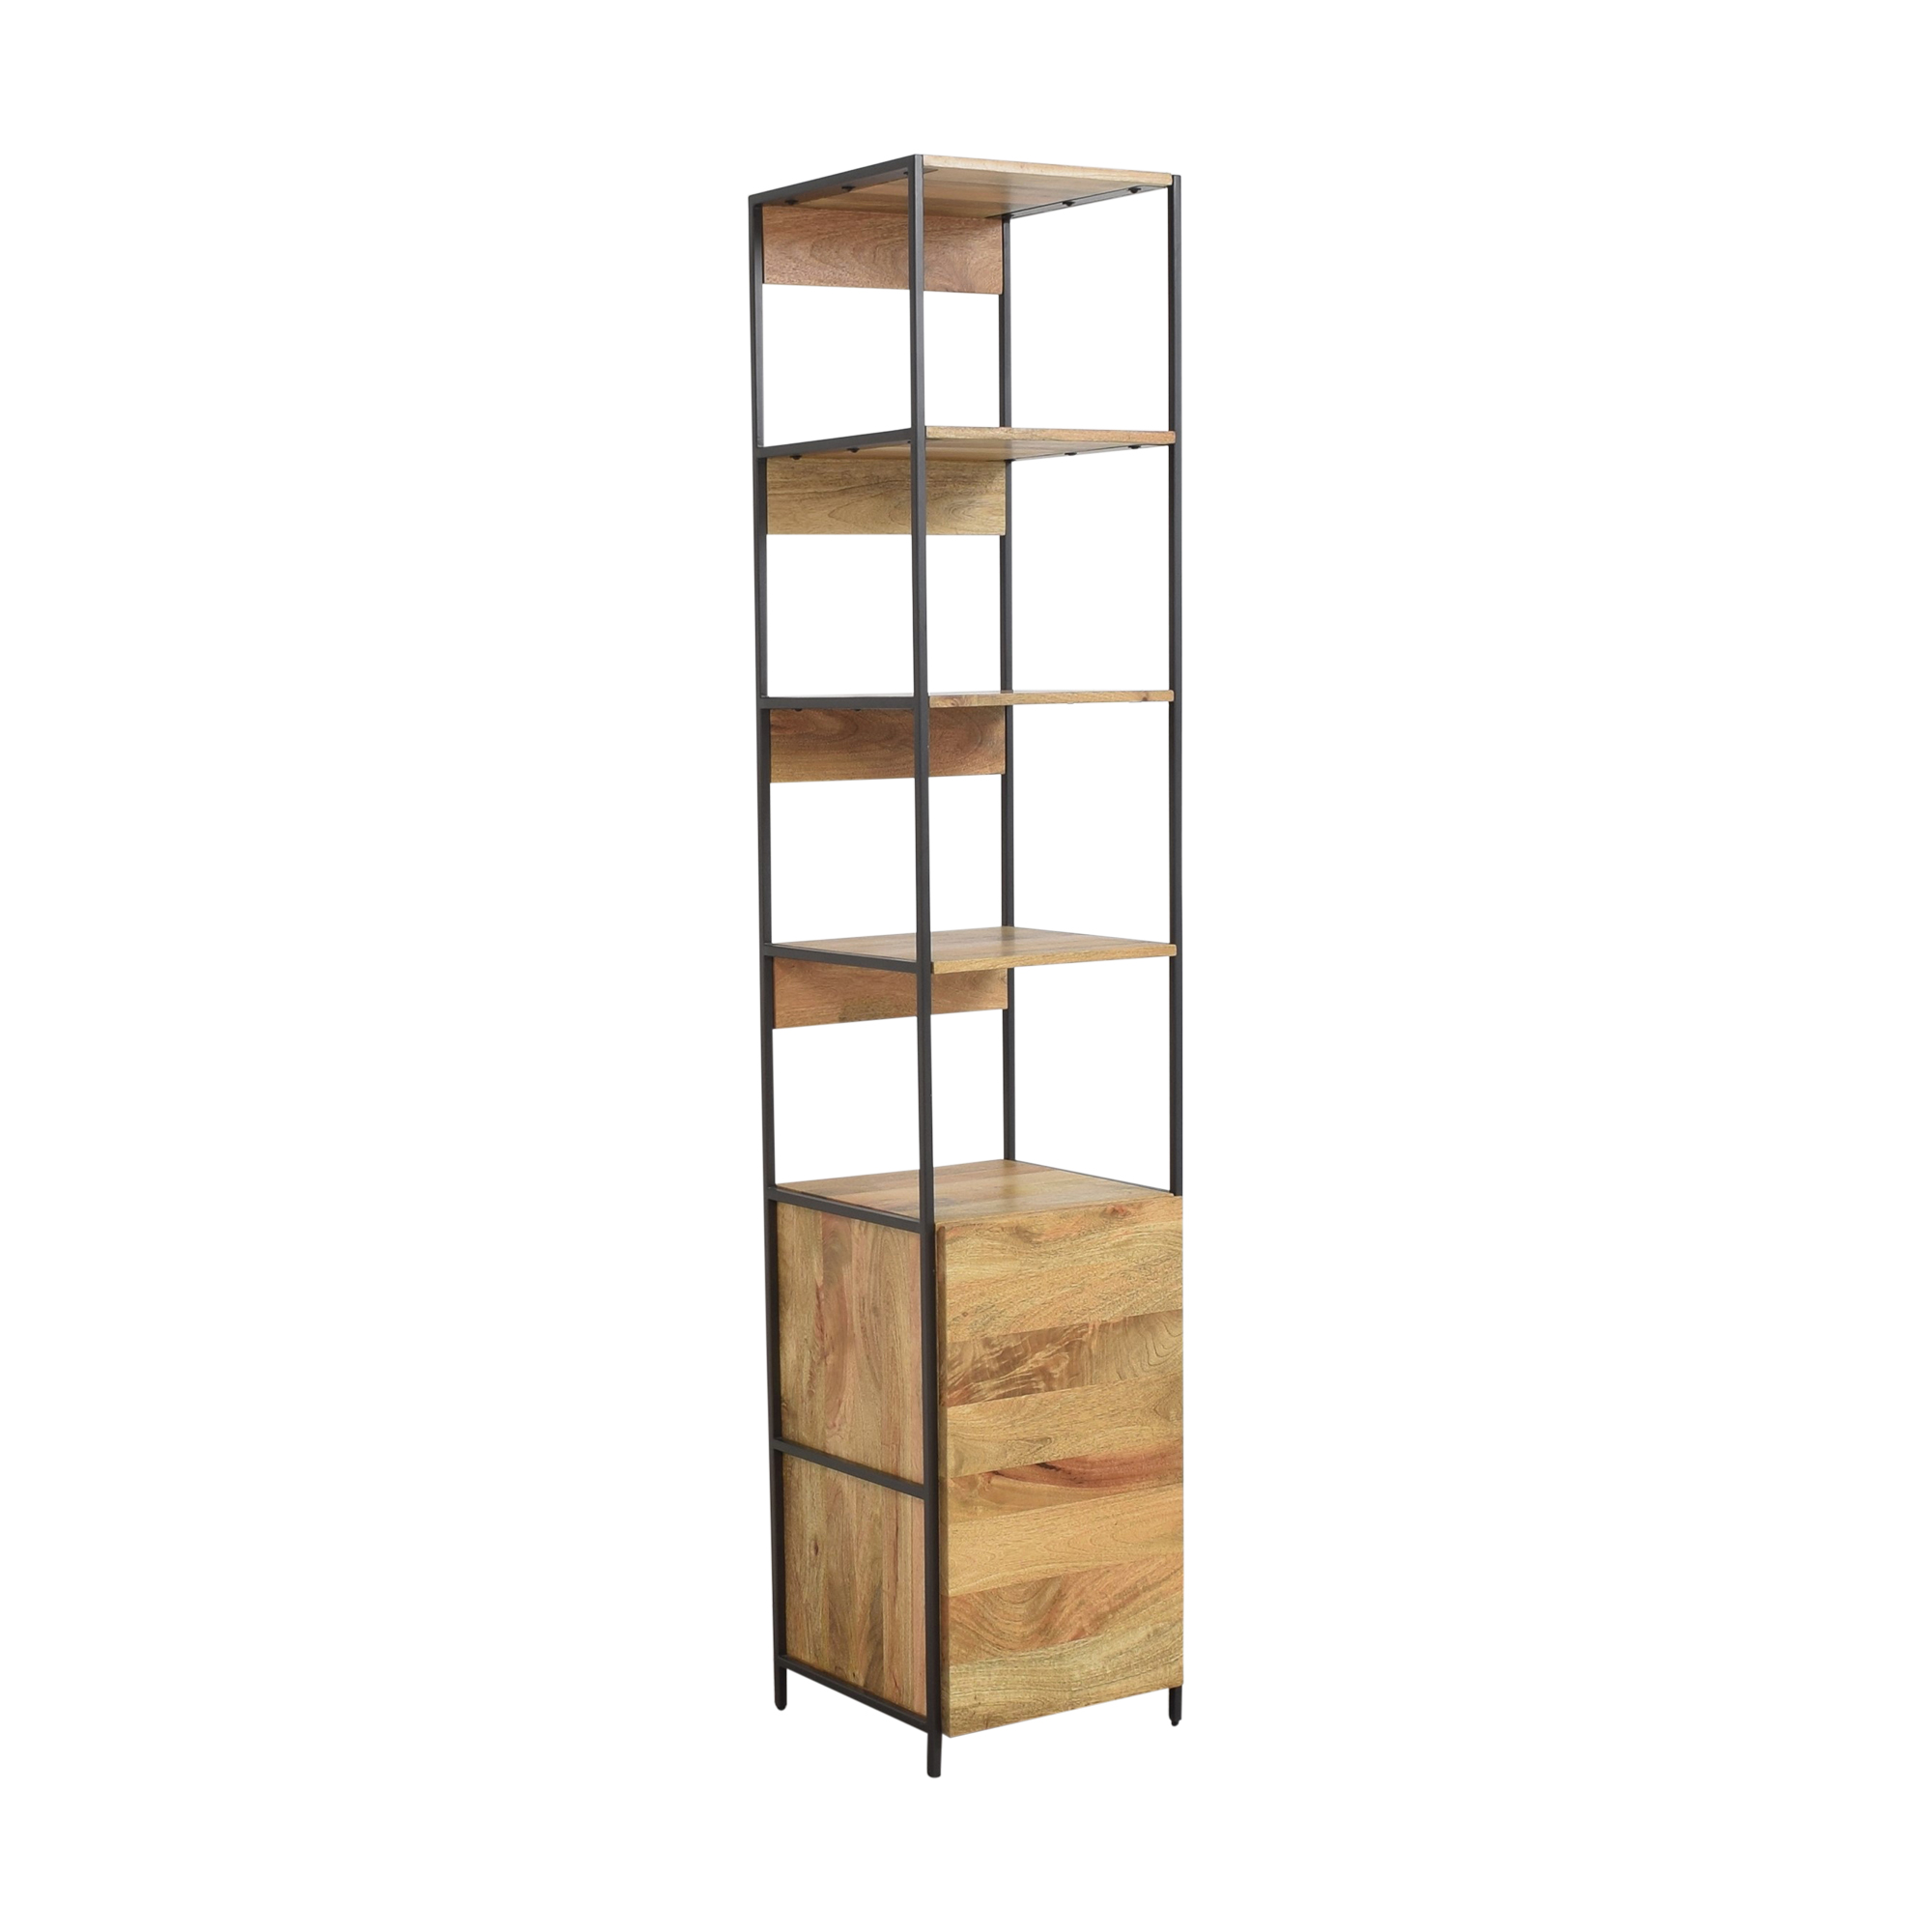 West Elm West Elm Industrial Modular Open and Closed Storage